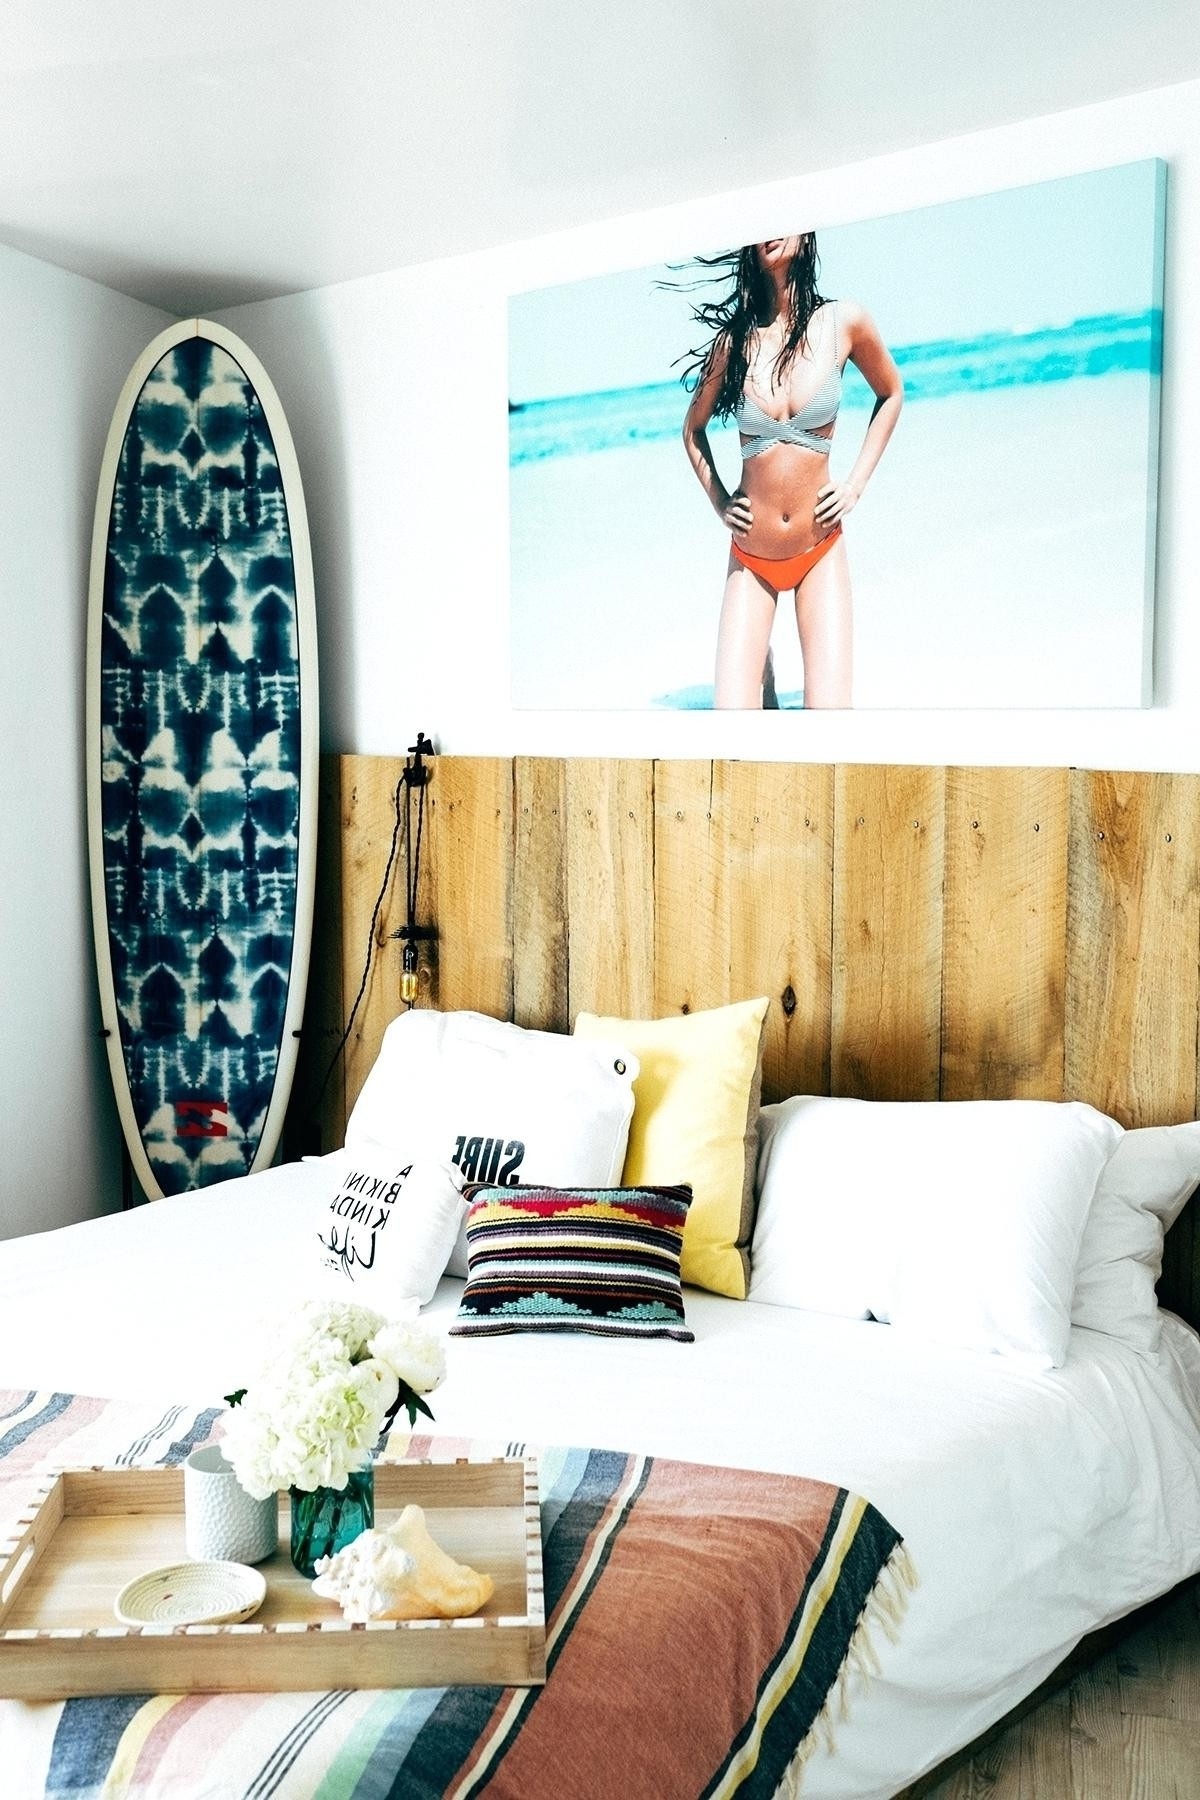 Wall Decals 4U Elegant 34 Lovely Surfboard Wall Art Home Decorations Intended For Favorite Surfboard Wall Art (View 19 of 20)